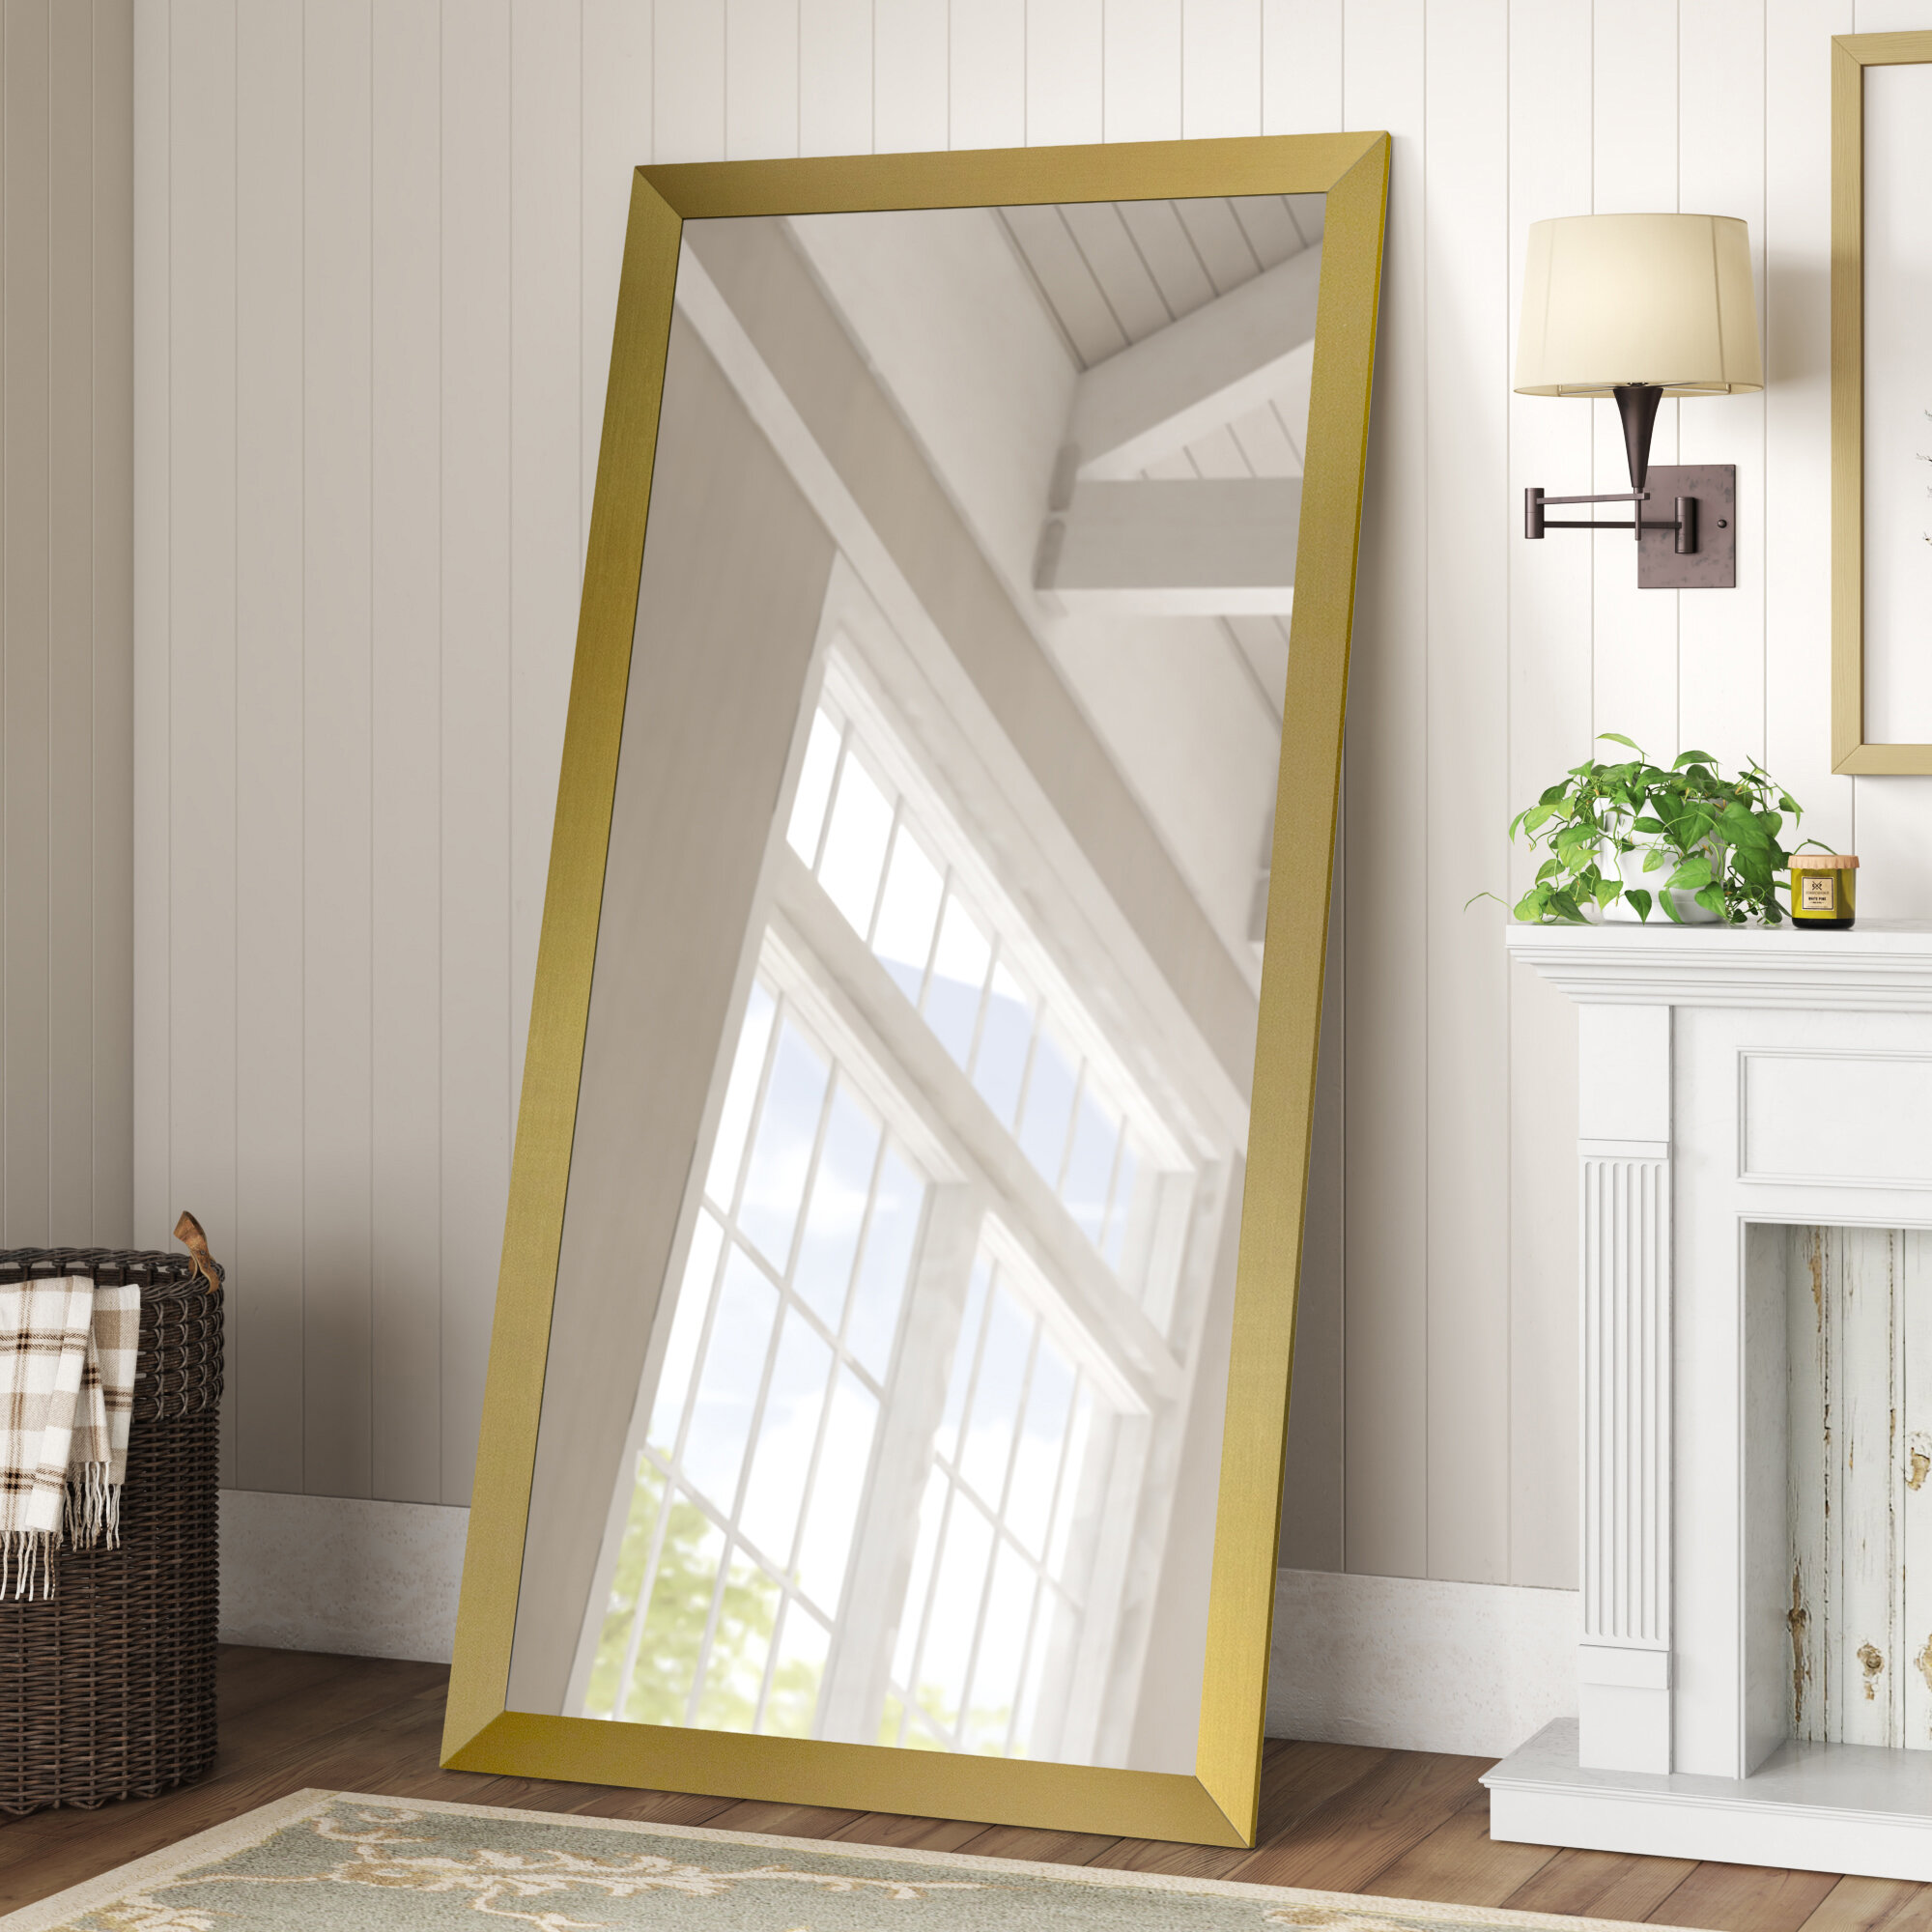 Gold Traditional Floor Mirrors You Ll Love In 2021 Wayfair